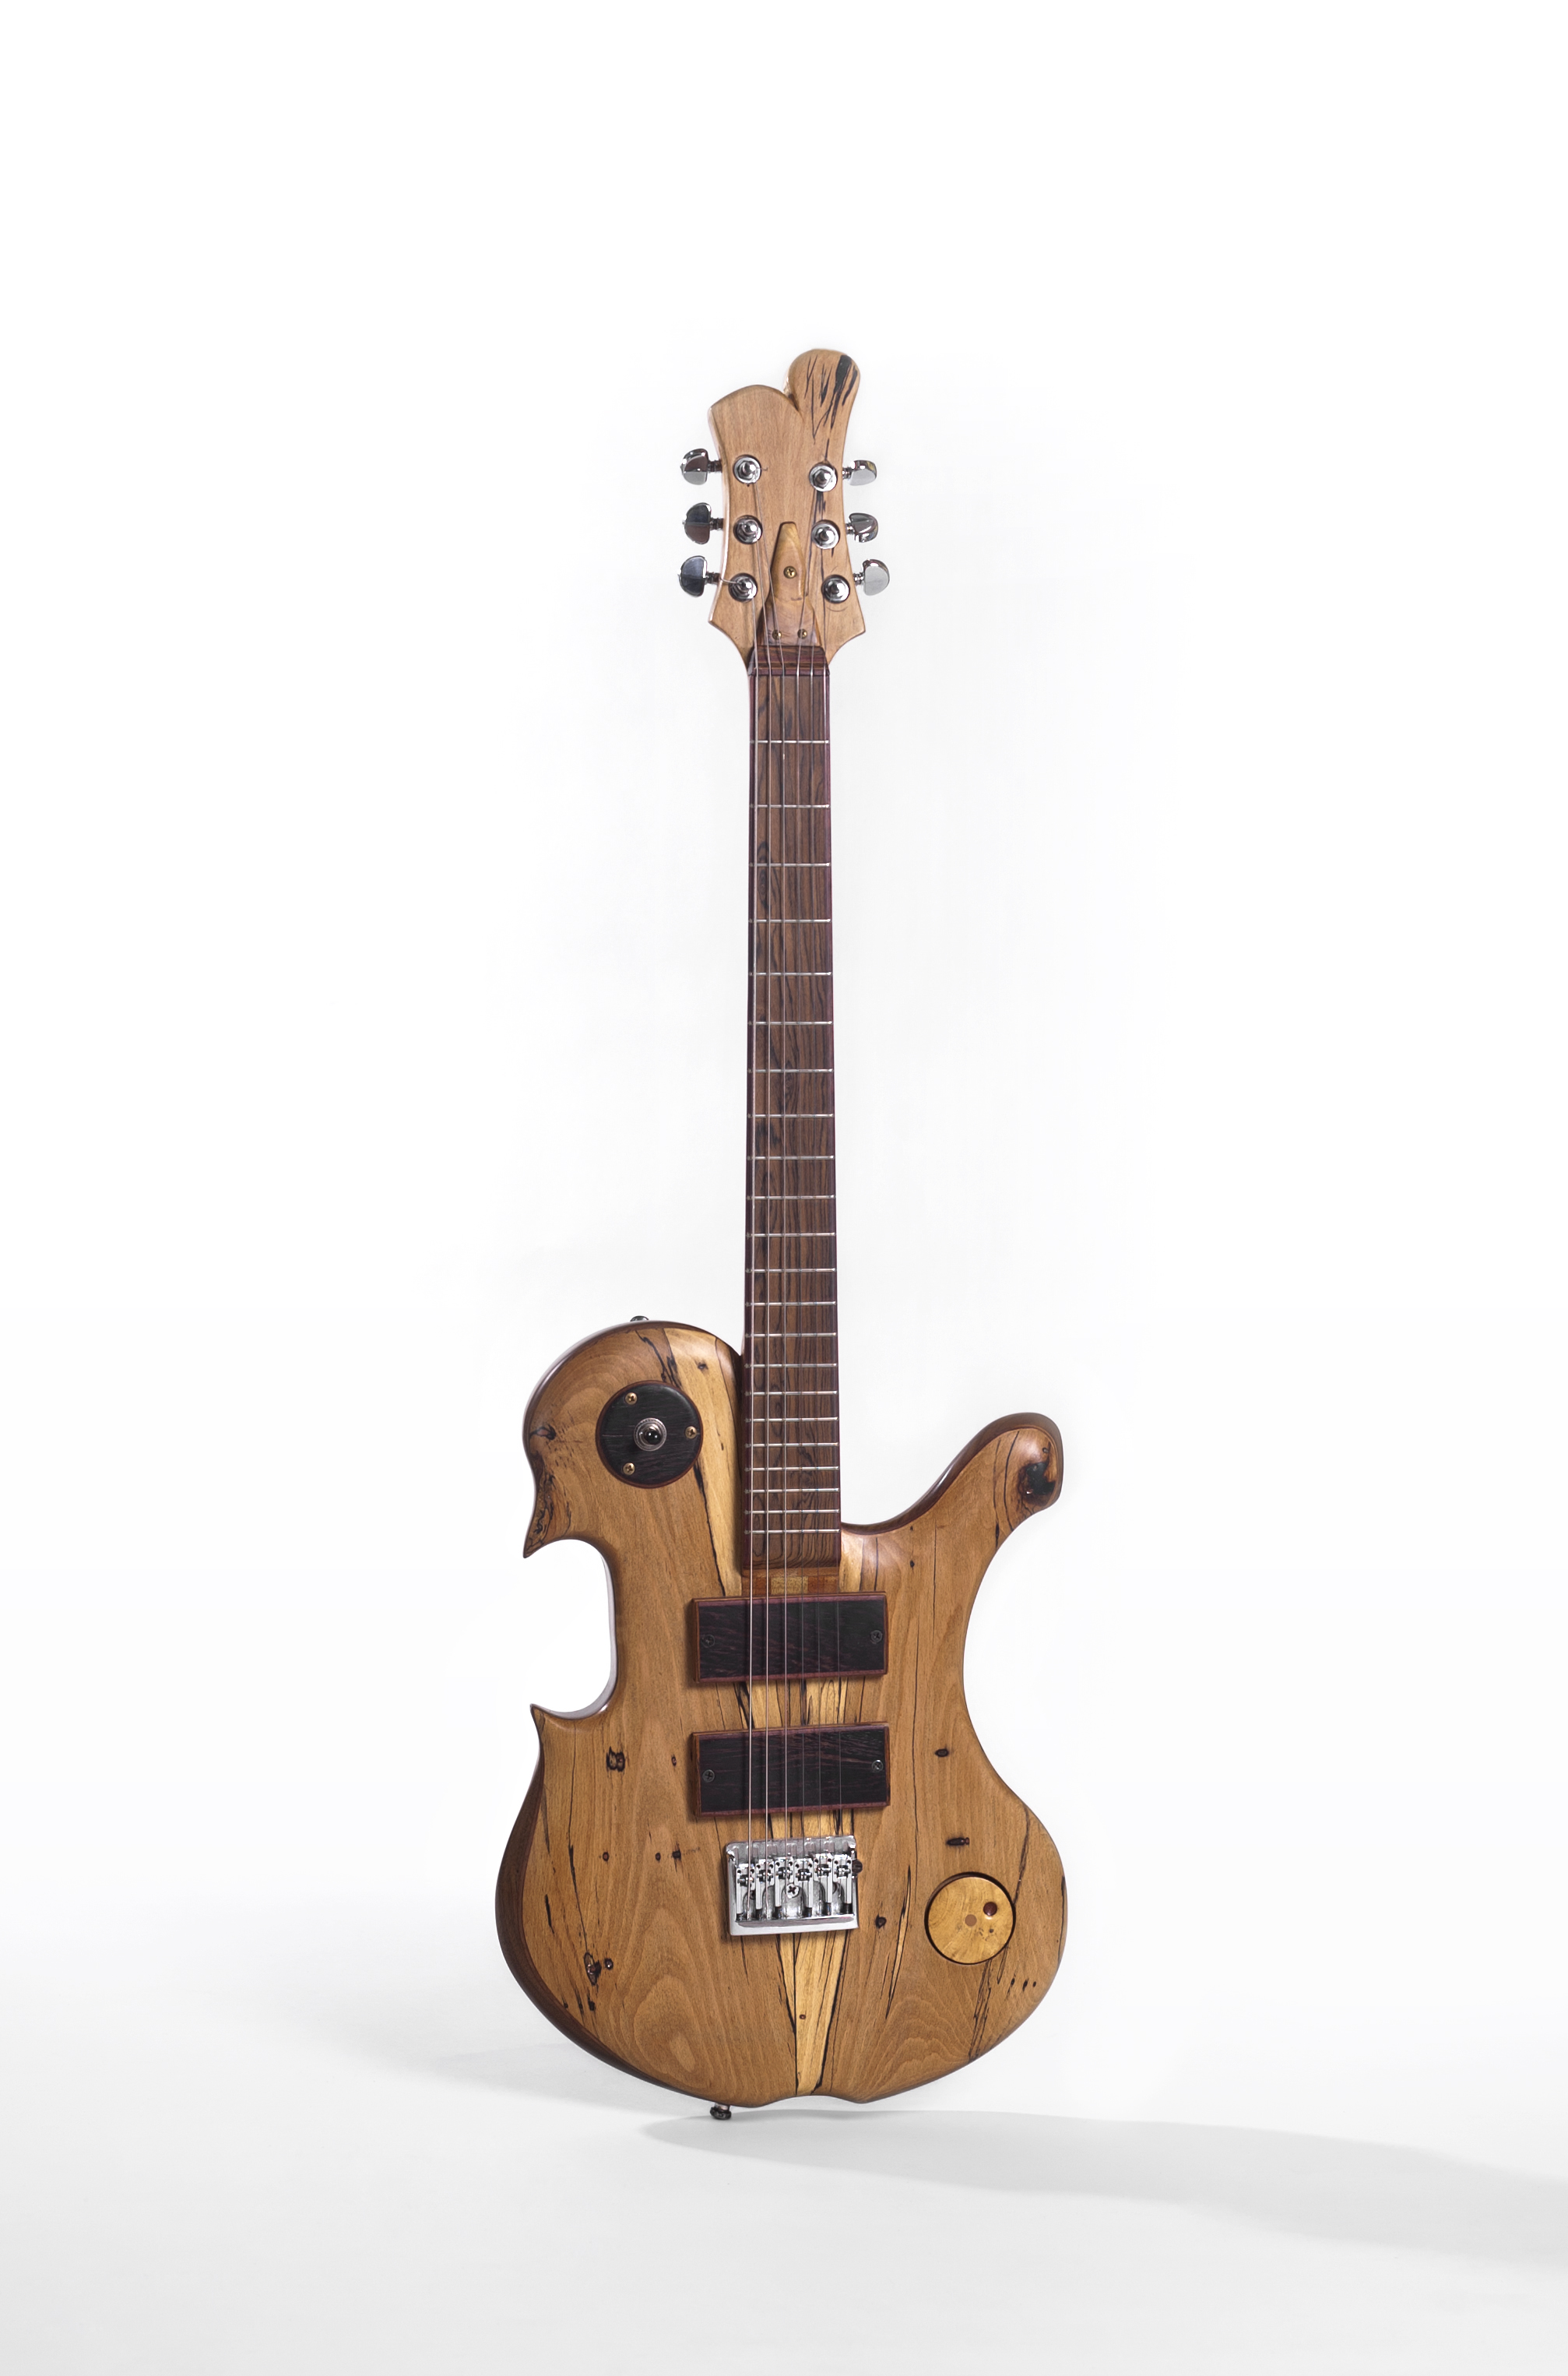 paulkarascustomguitars_020411_010.jpg